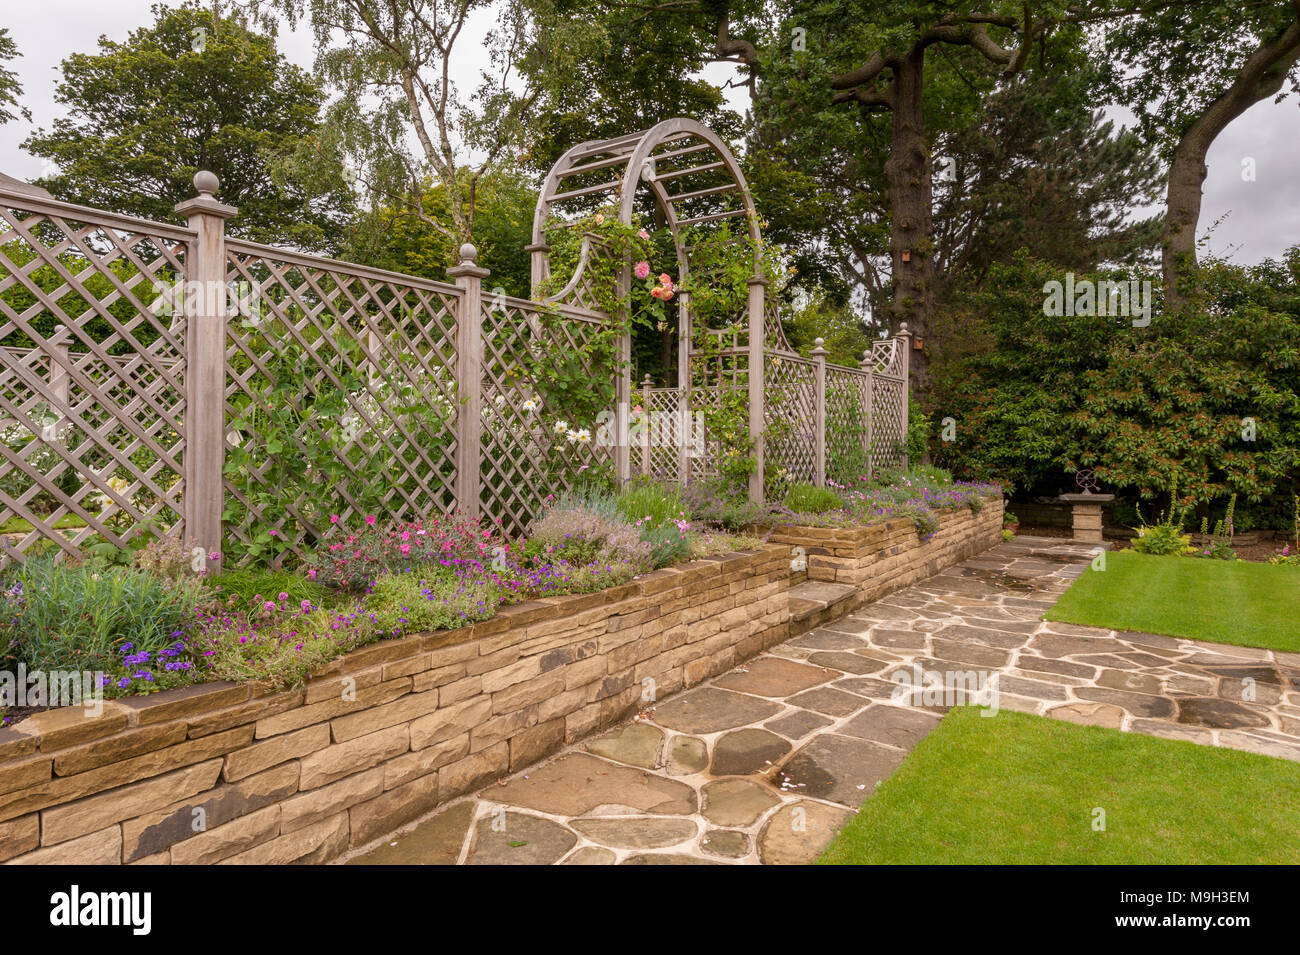 Path, flowering plants on border, lawn, stone wall, wooden trellis ...